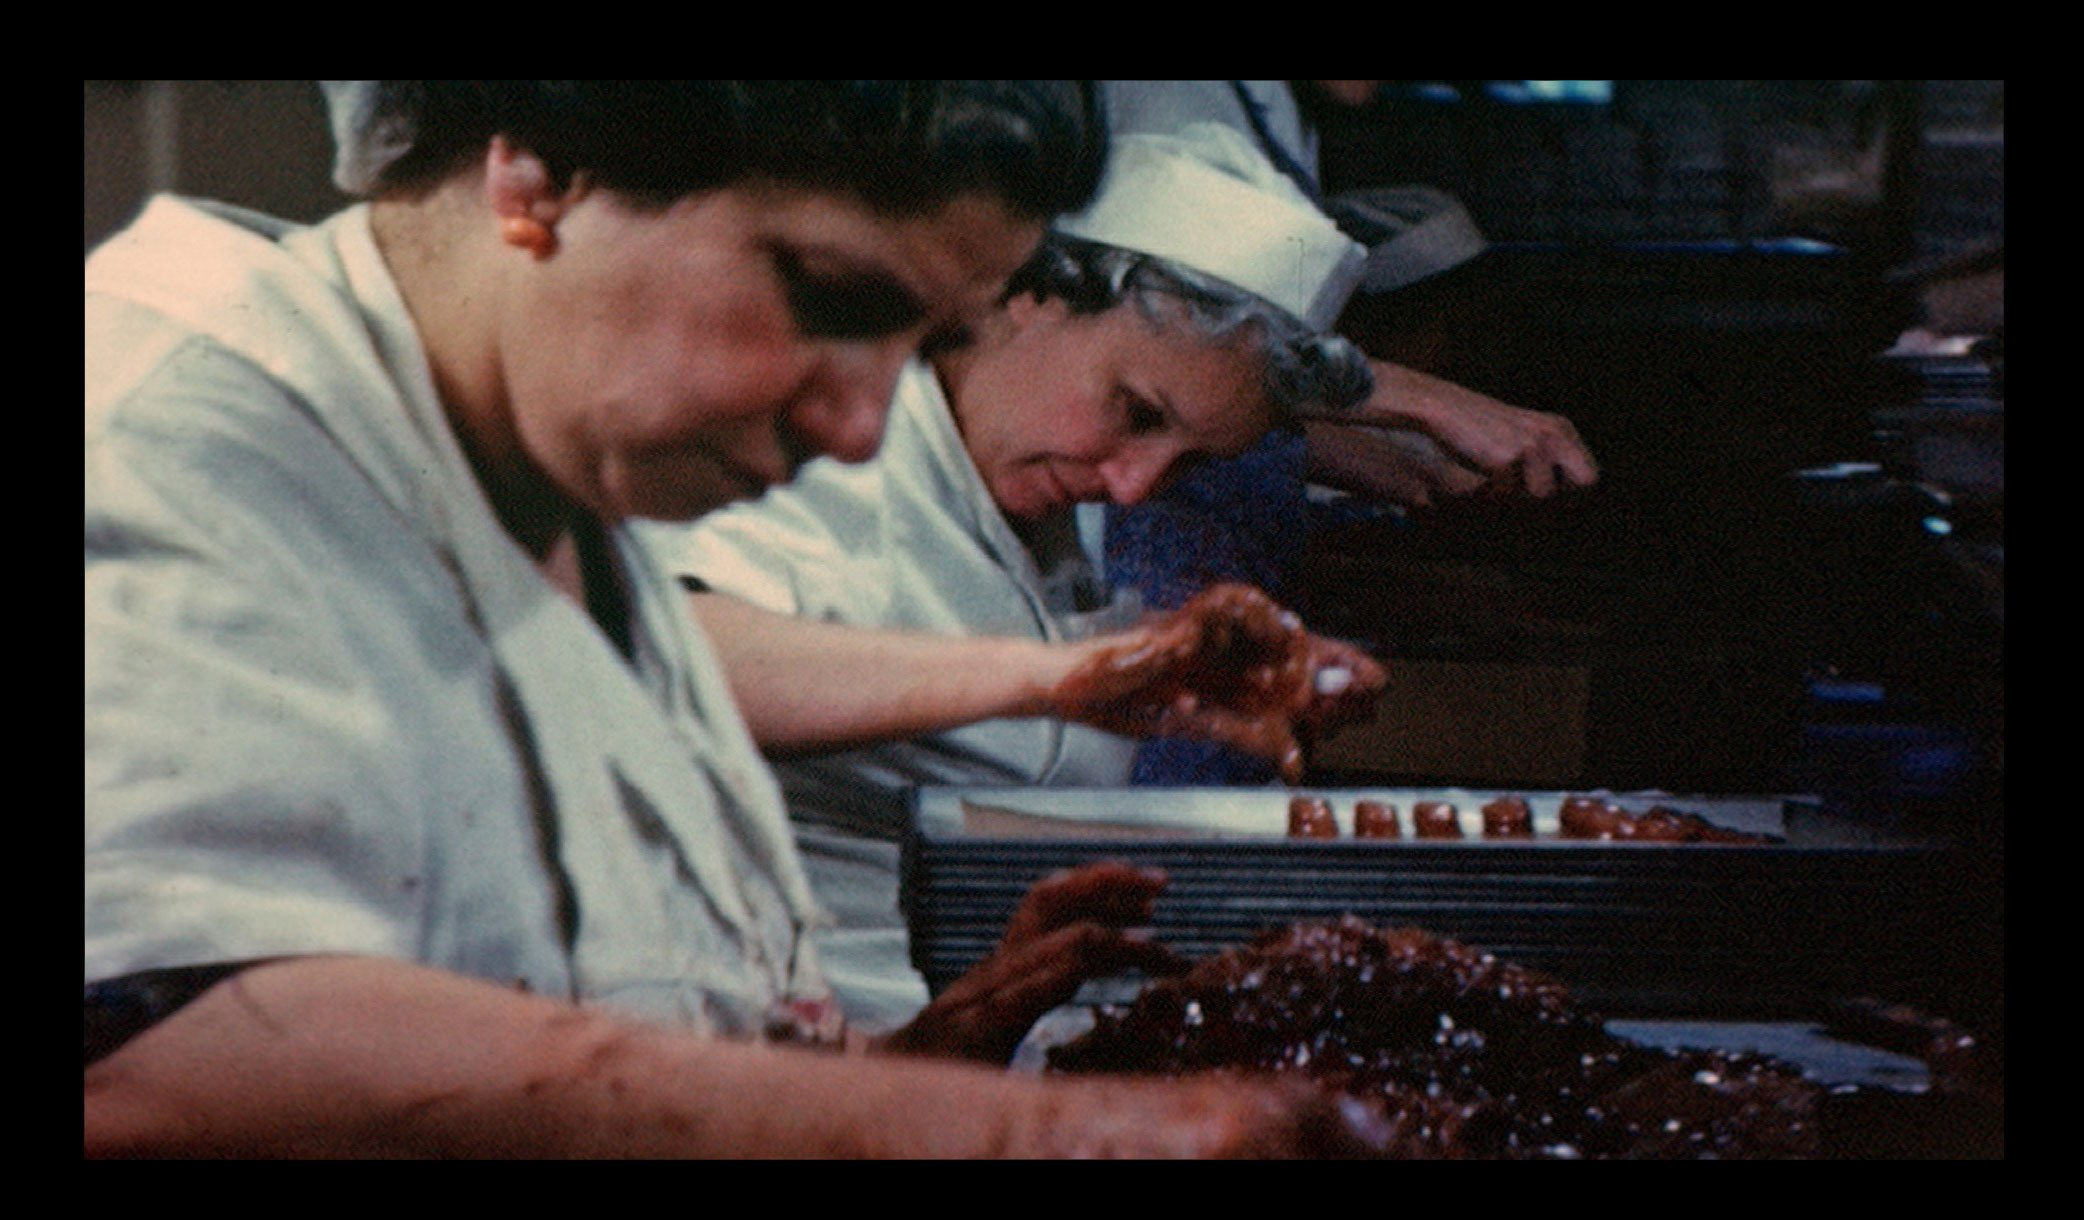 Photo of Lanzi candy workers in action